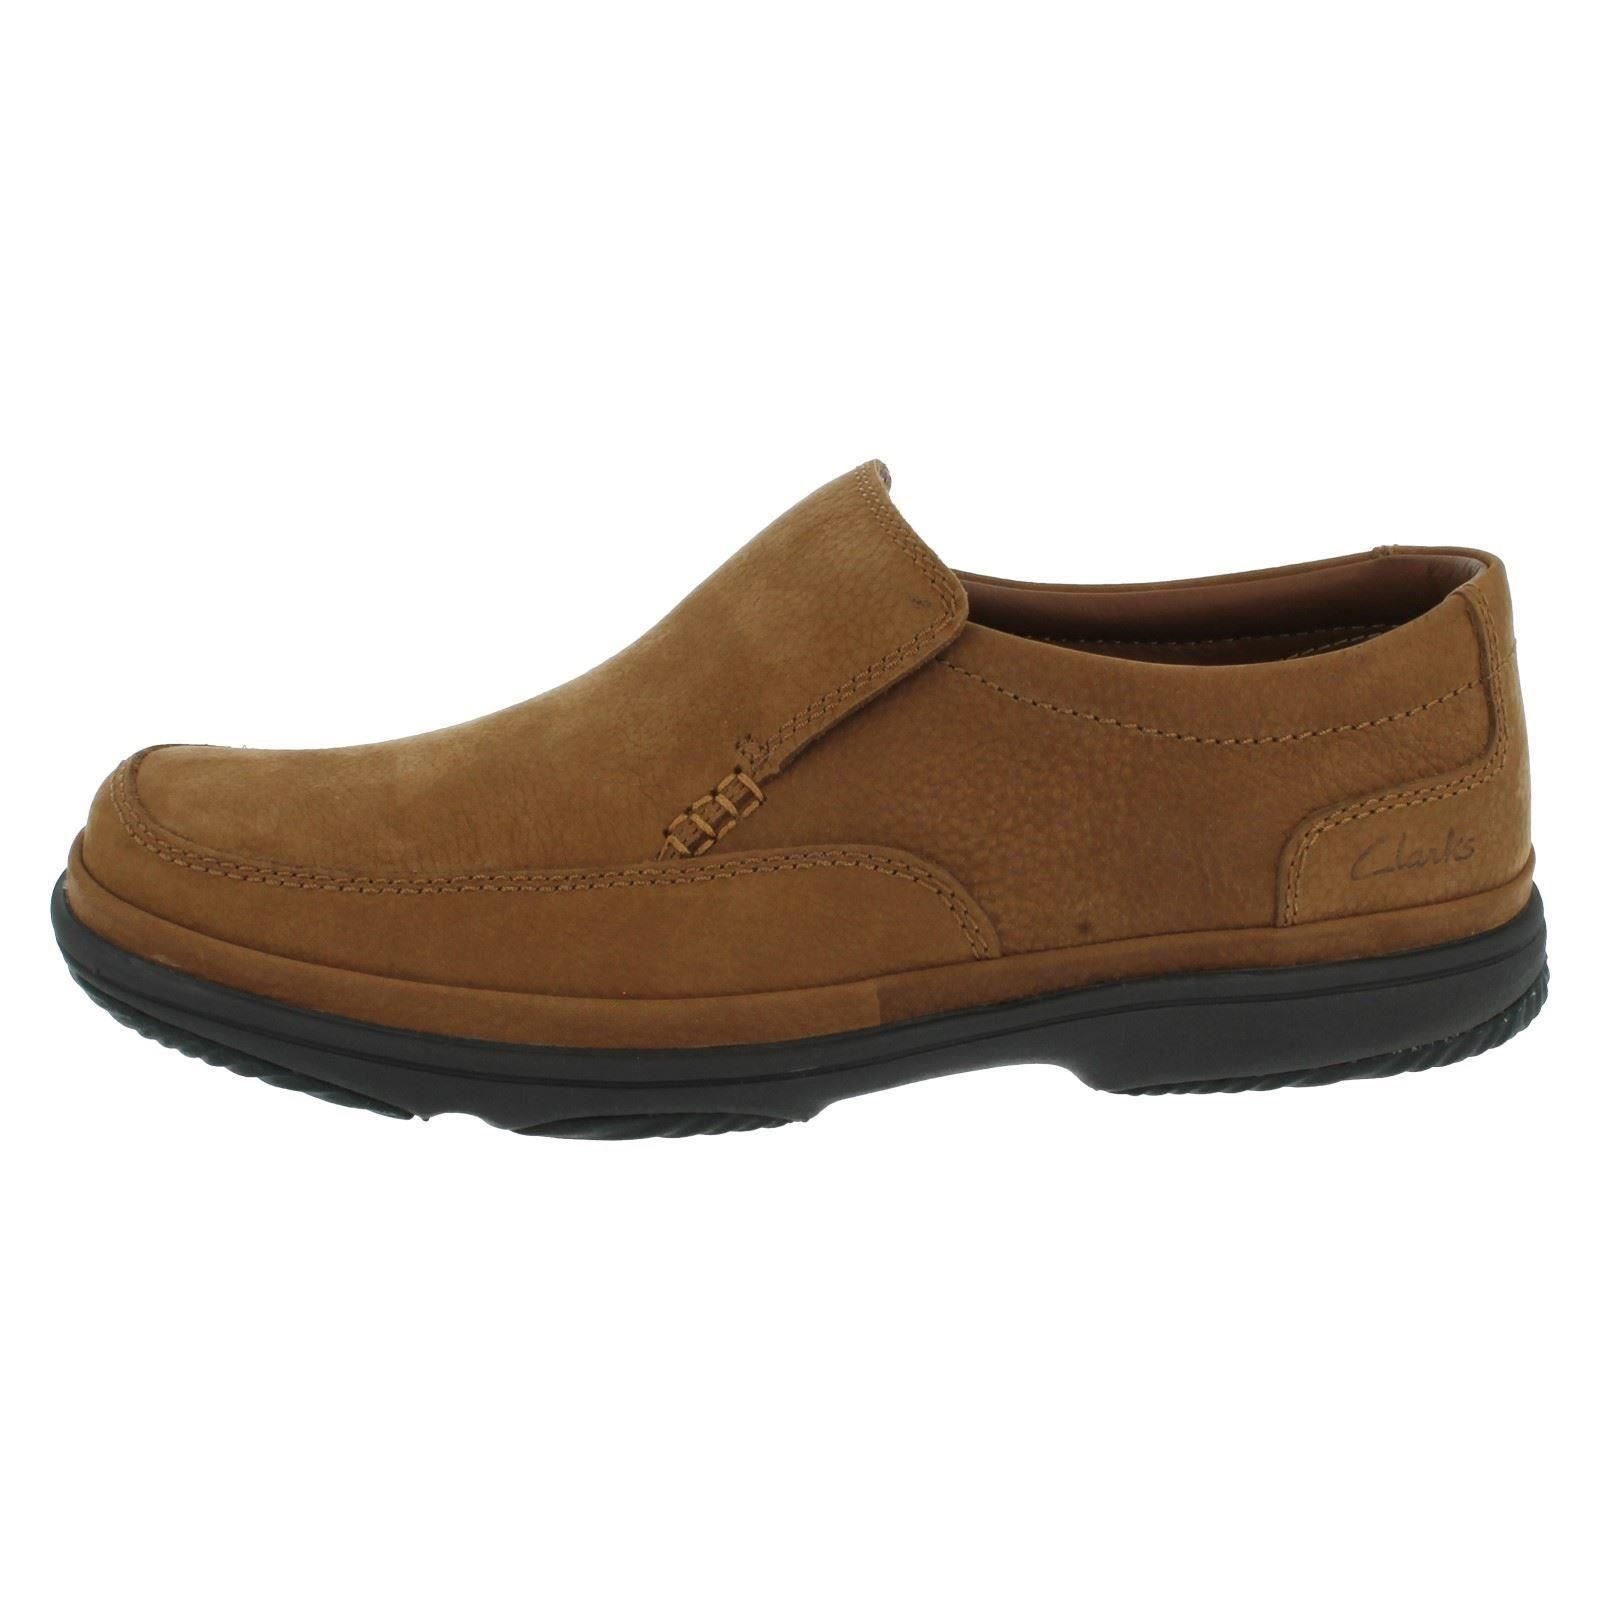 Men's Shoes Clarks Formal Shoes Men's Swift Step 78a5b3